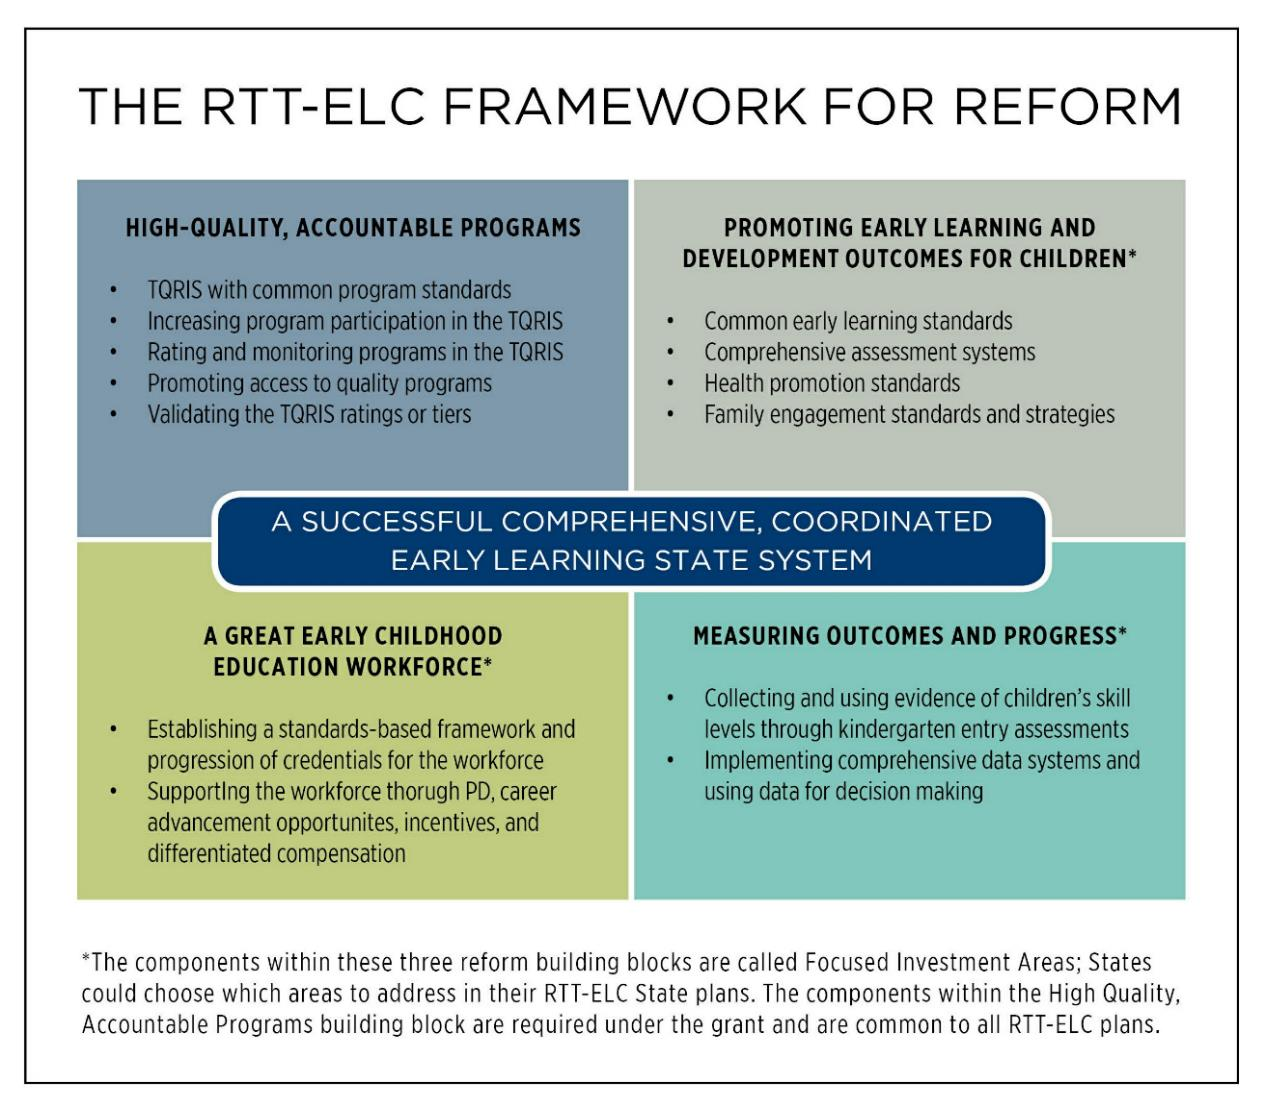 Figure 3. RTT-ELC Framework for Reform Building a Successful Comprehensive, Coordinated Early Learning State System Many young children have early learning experiences in more than one setting.